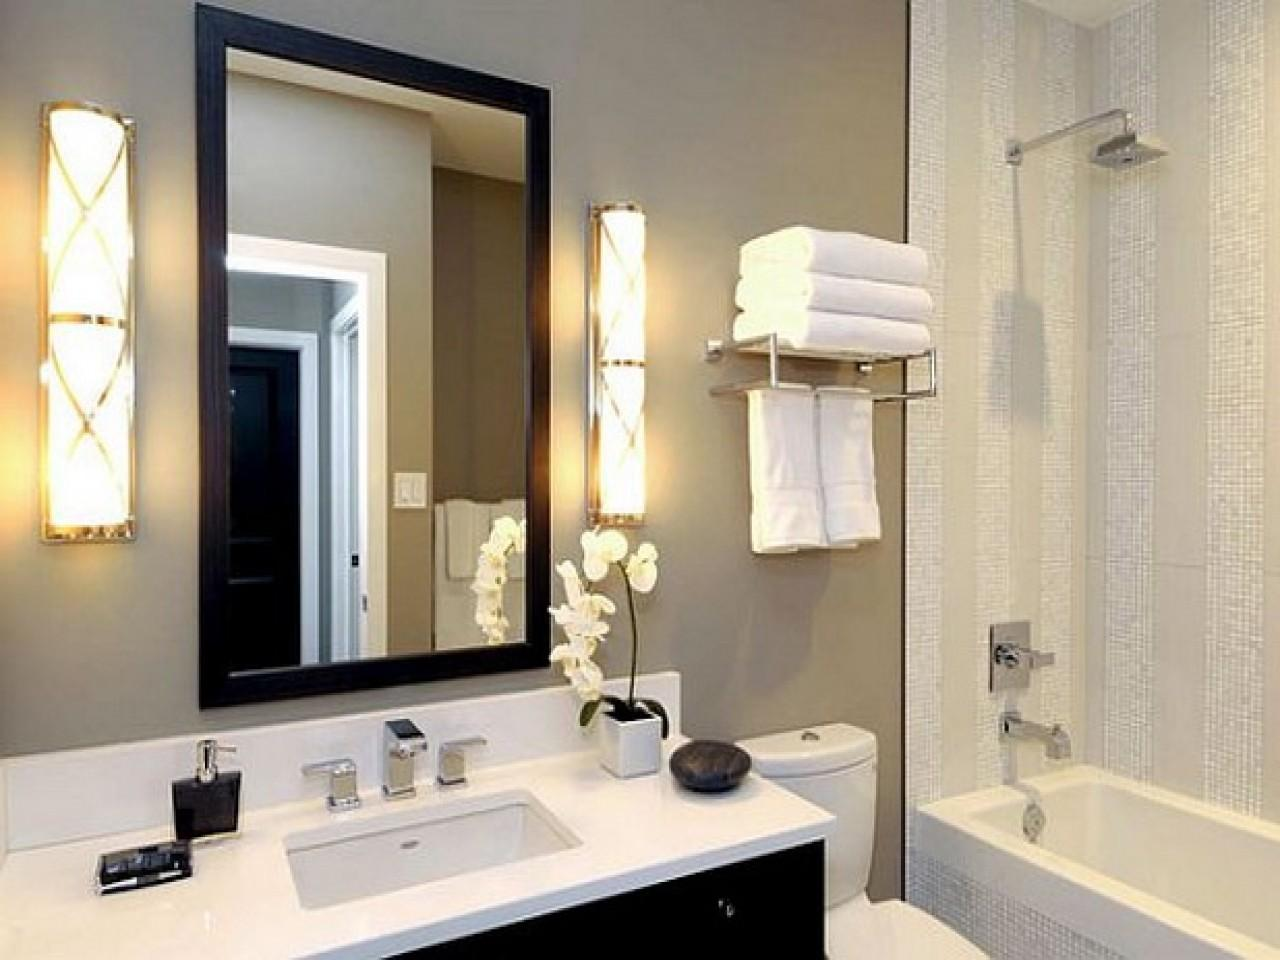 Living Room Decorative Accessories Inexpensive Bathroom